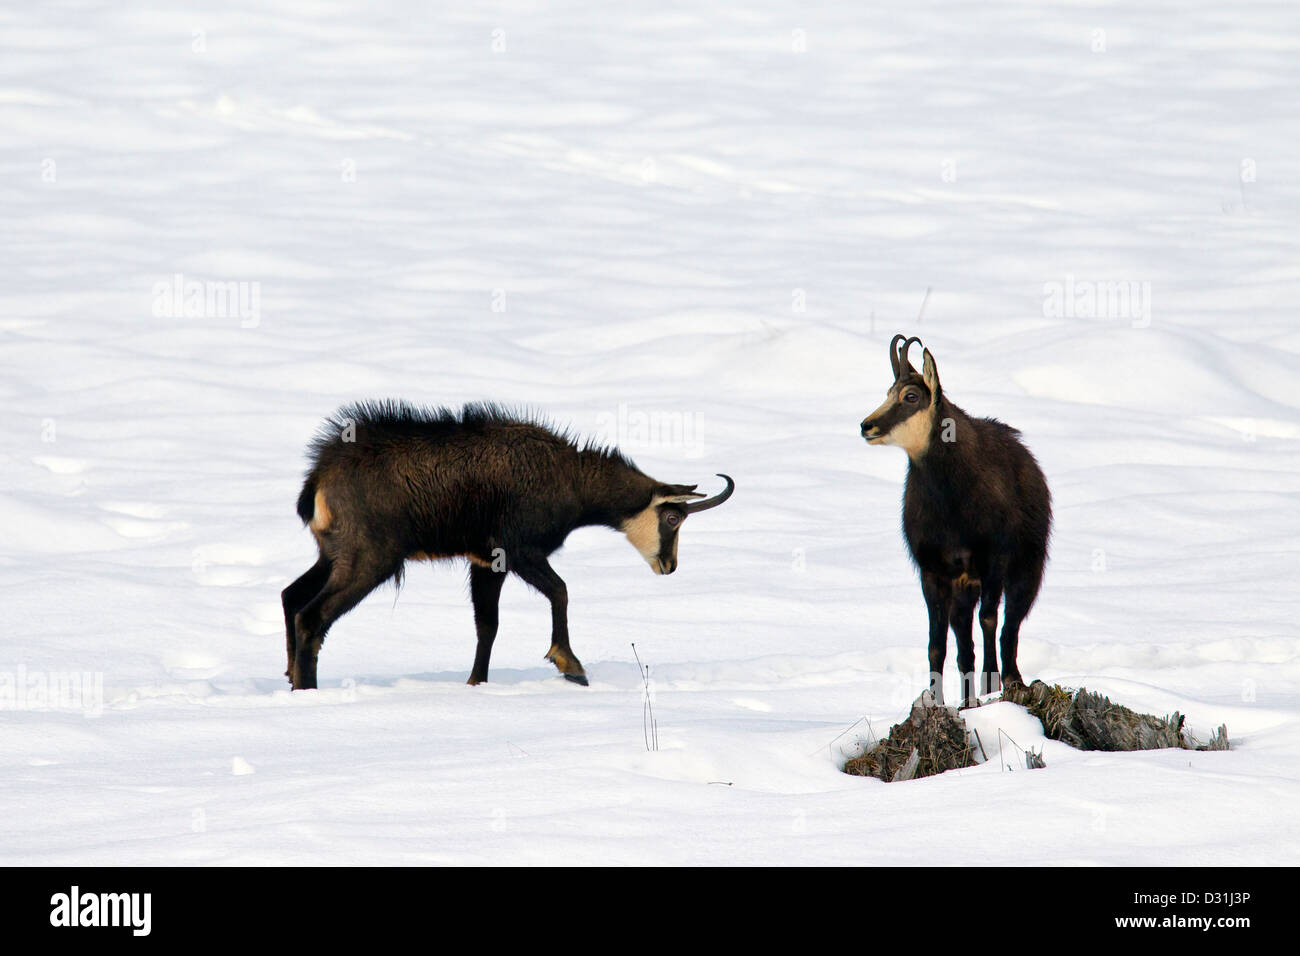 Two Chamois (Rupicapra rupicapra) bucks during the rut in the snow in winter - Stock Image